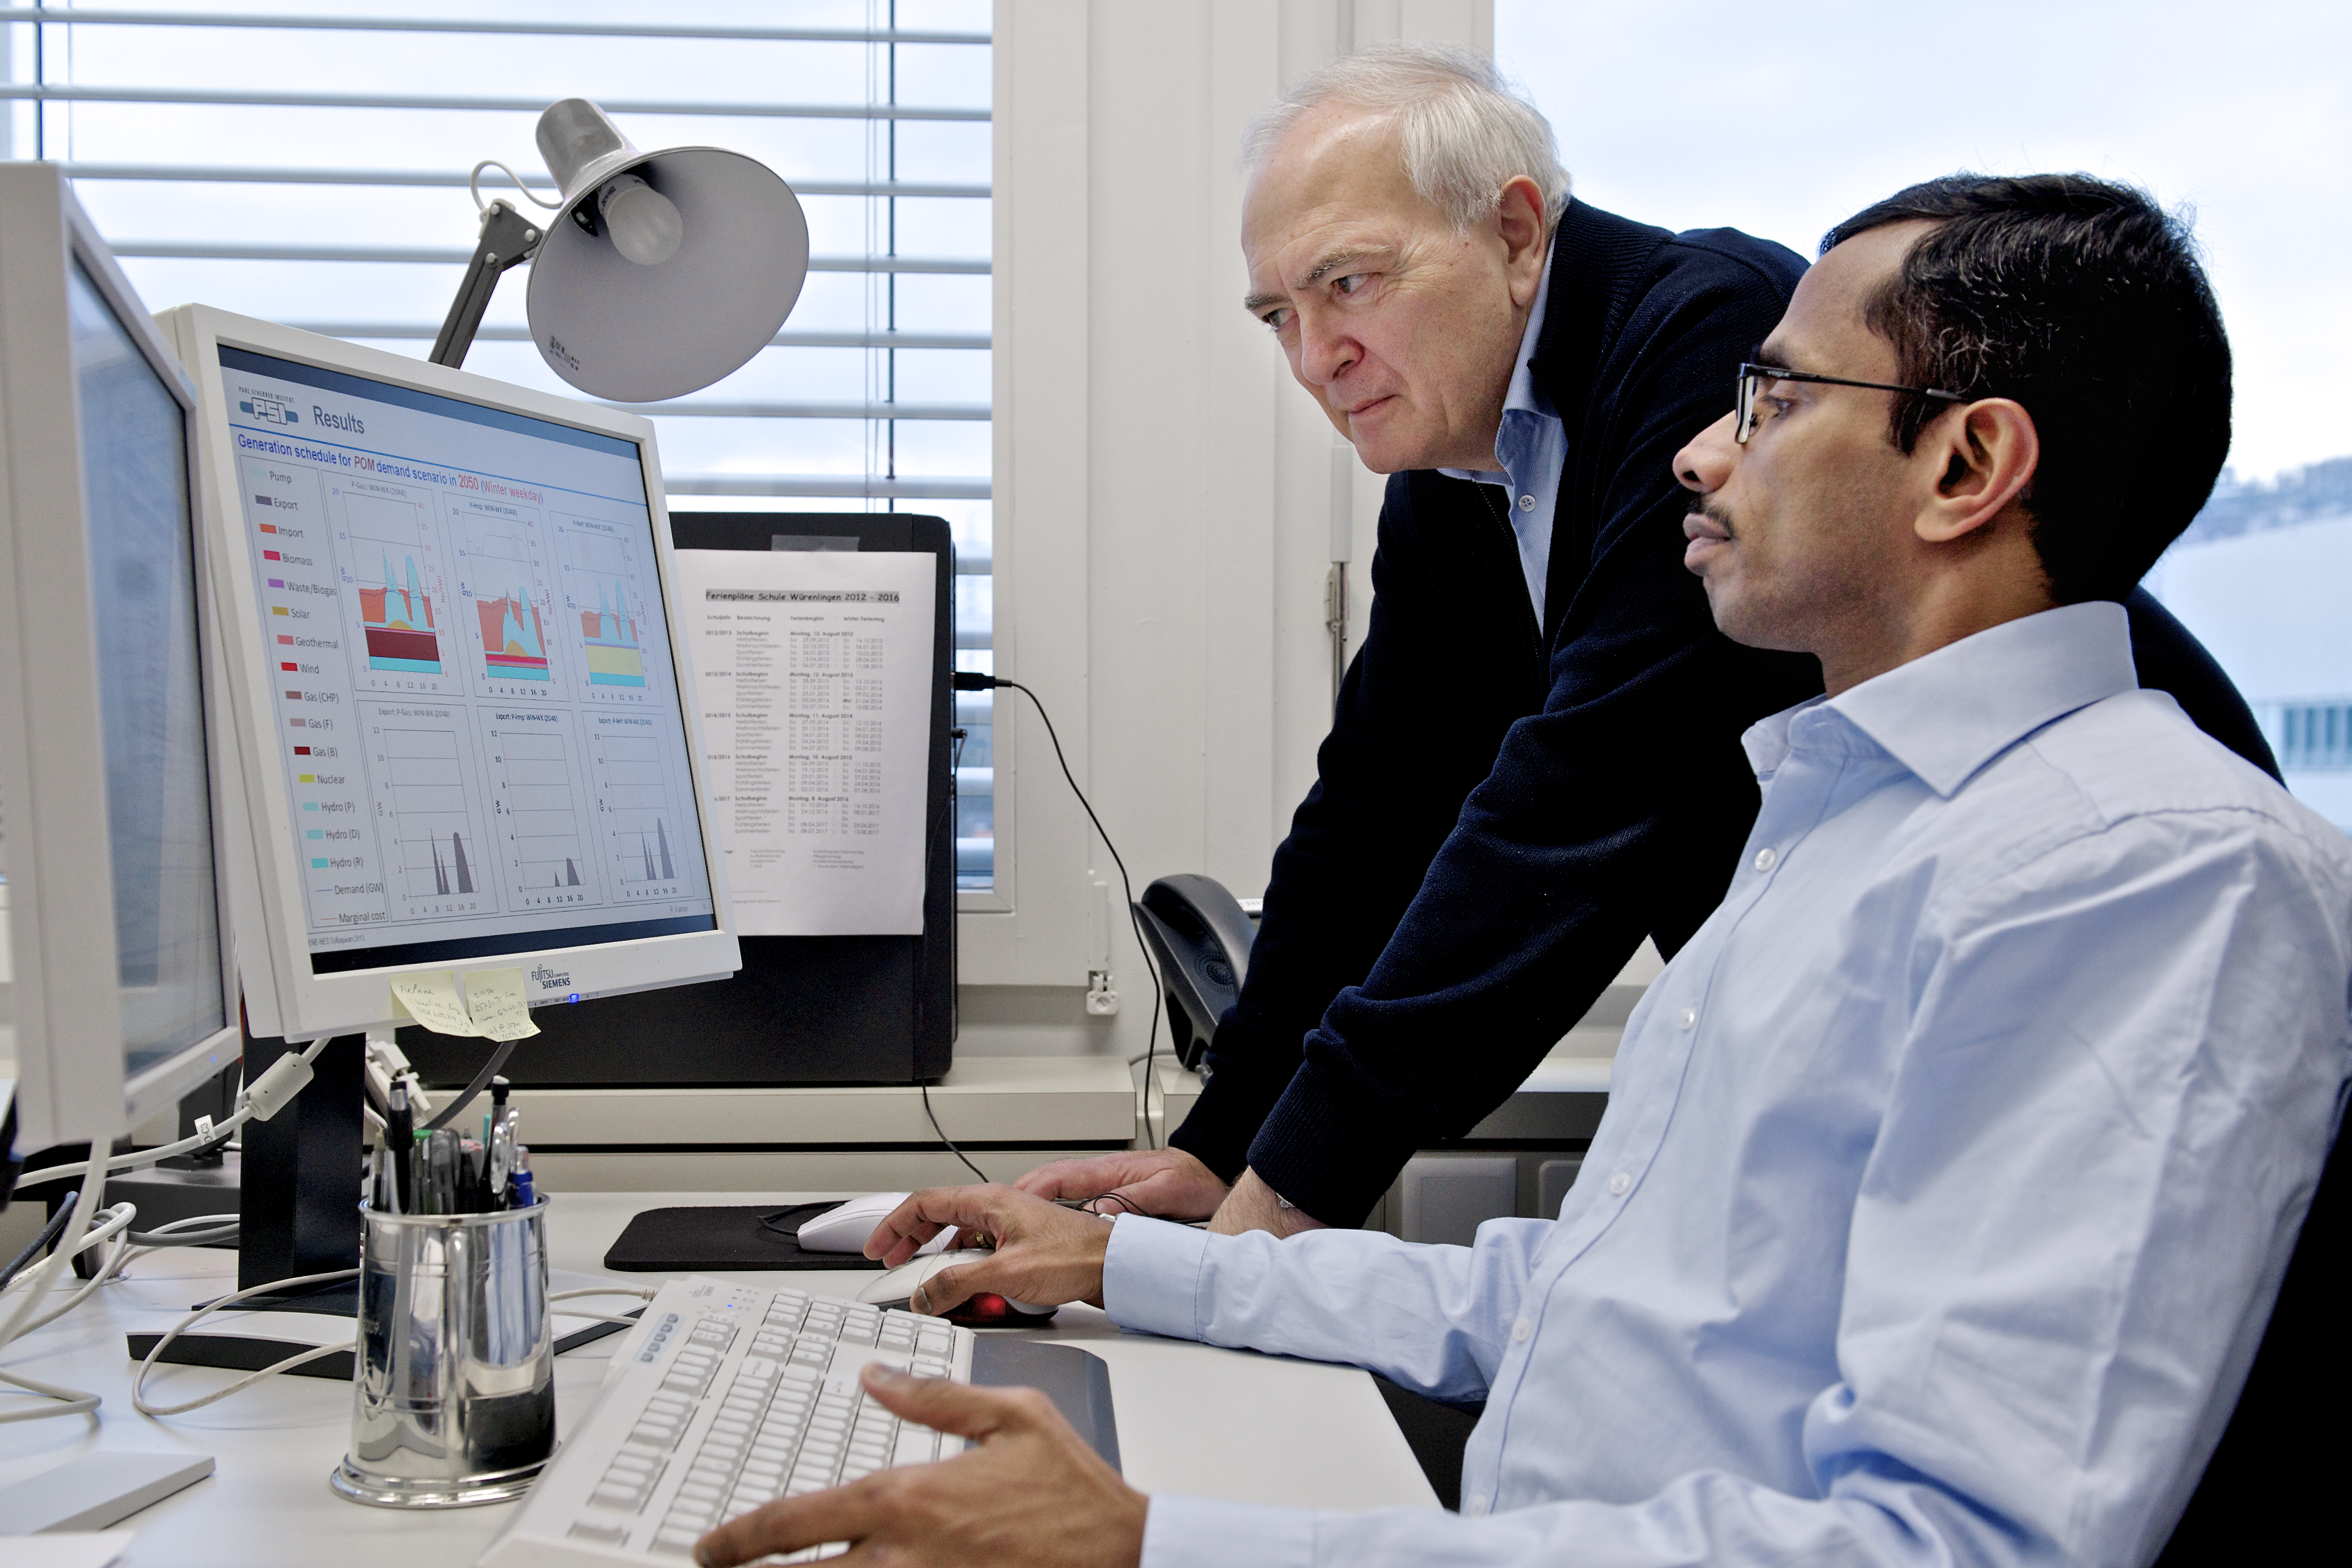 Stefan Hirschberg, Head of the Laboratory of Energy Systems Analysis, and Kannan Ramachandran, co-author of the STEM-E model.